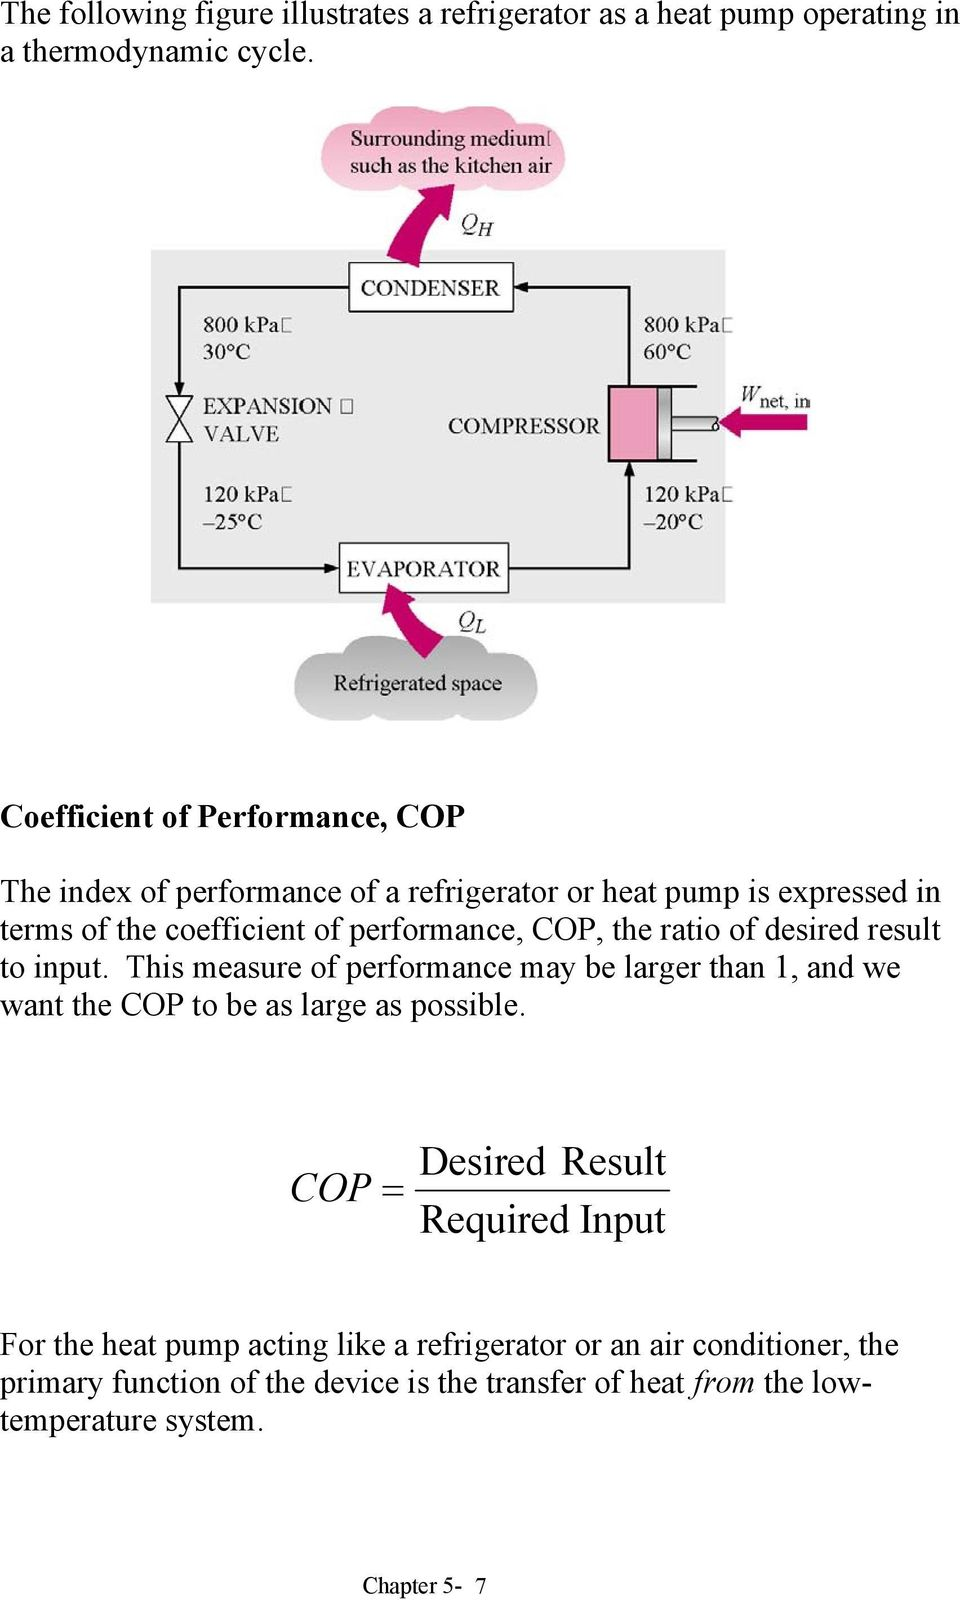 COP, the ratio of desired result to input. his measure of performance may be larger than 1, and we want the COP to be as large as possible.